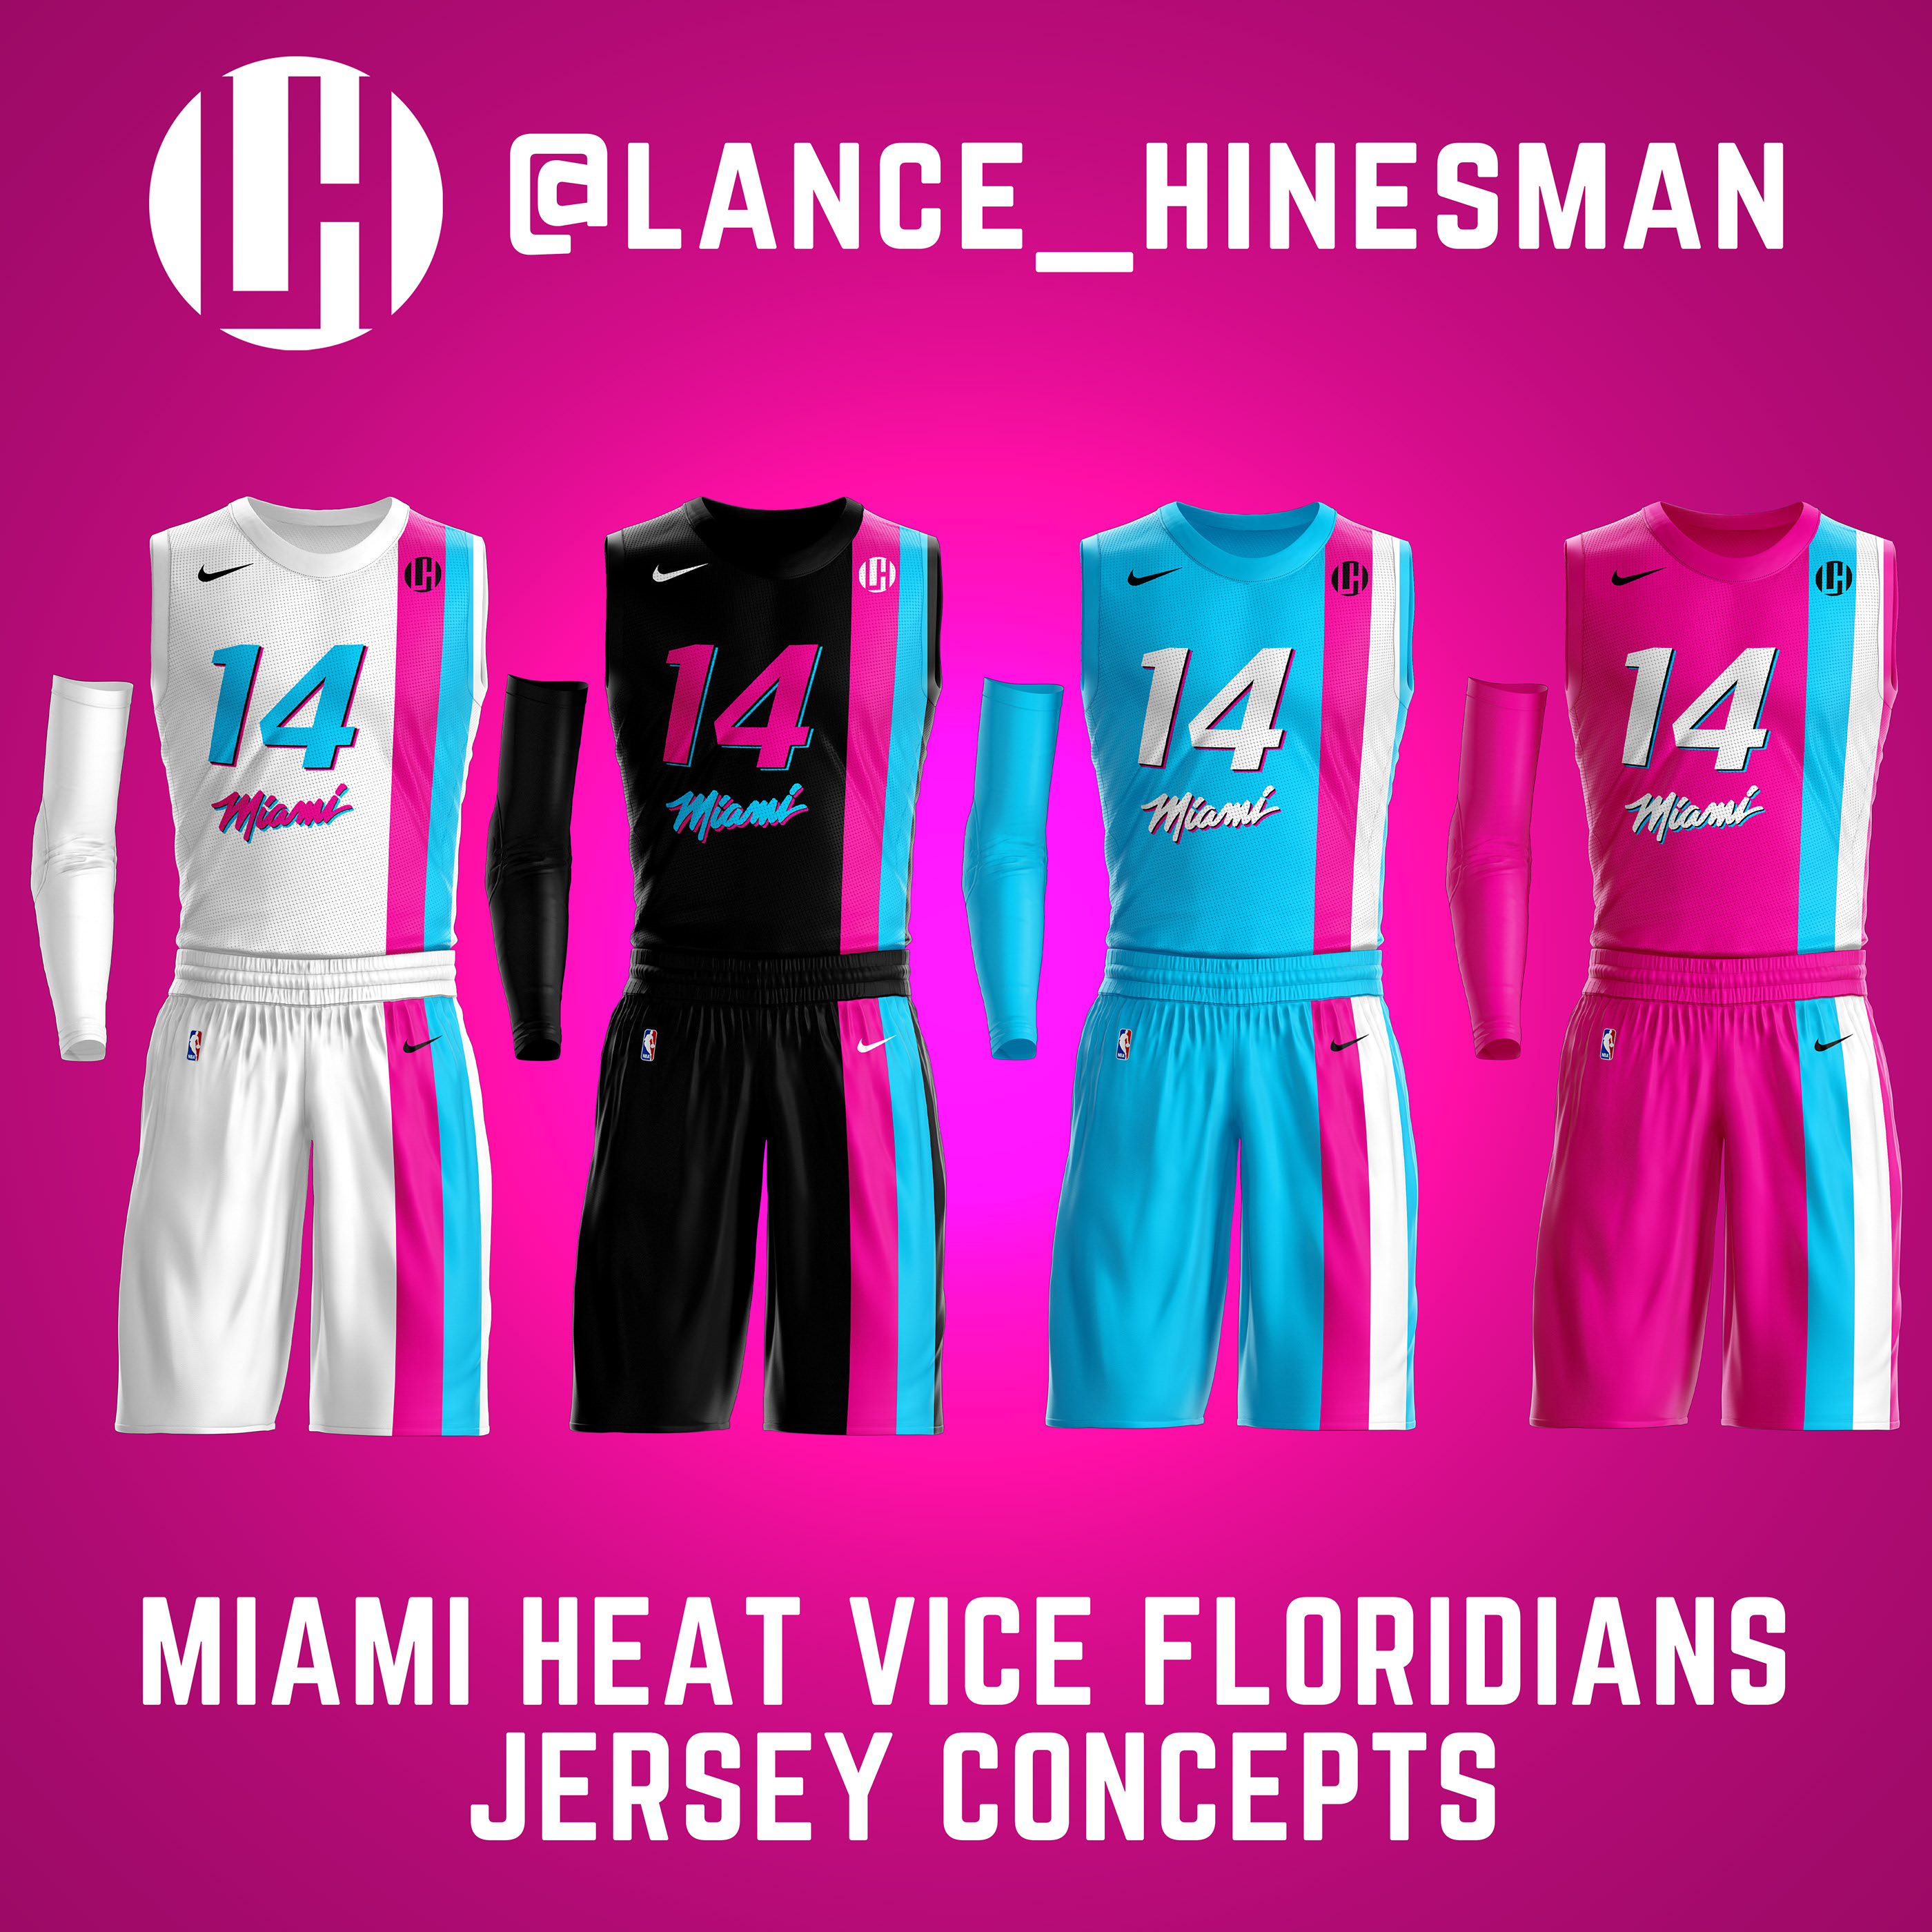 Miami Heat Vice Floridians Jersey Concept On Behance